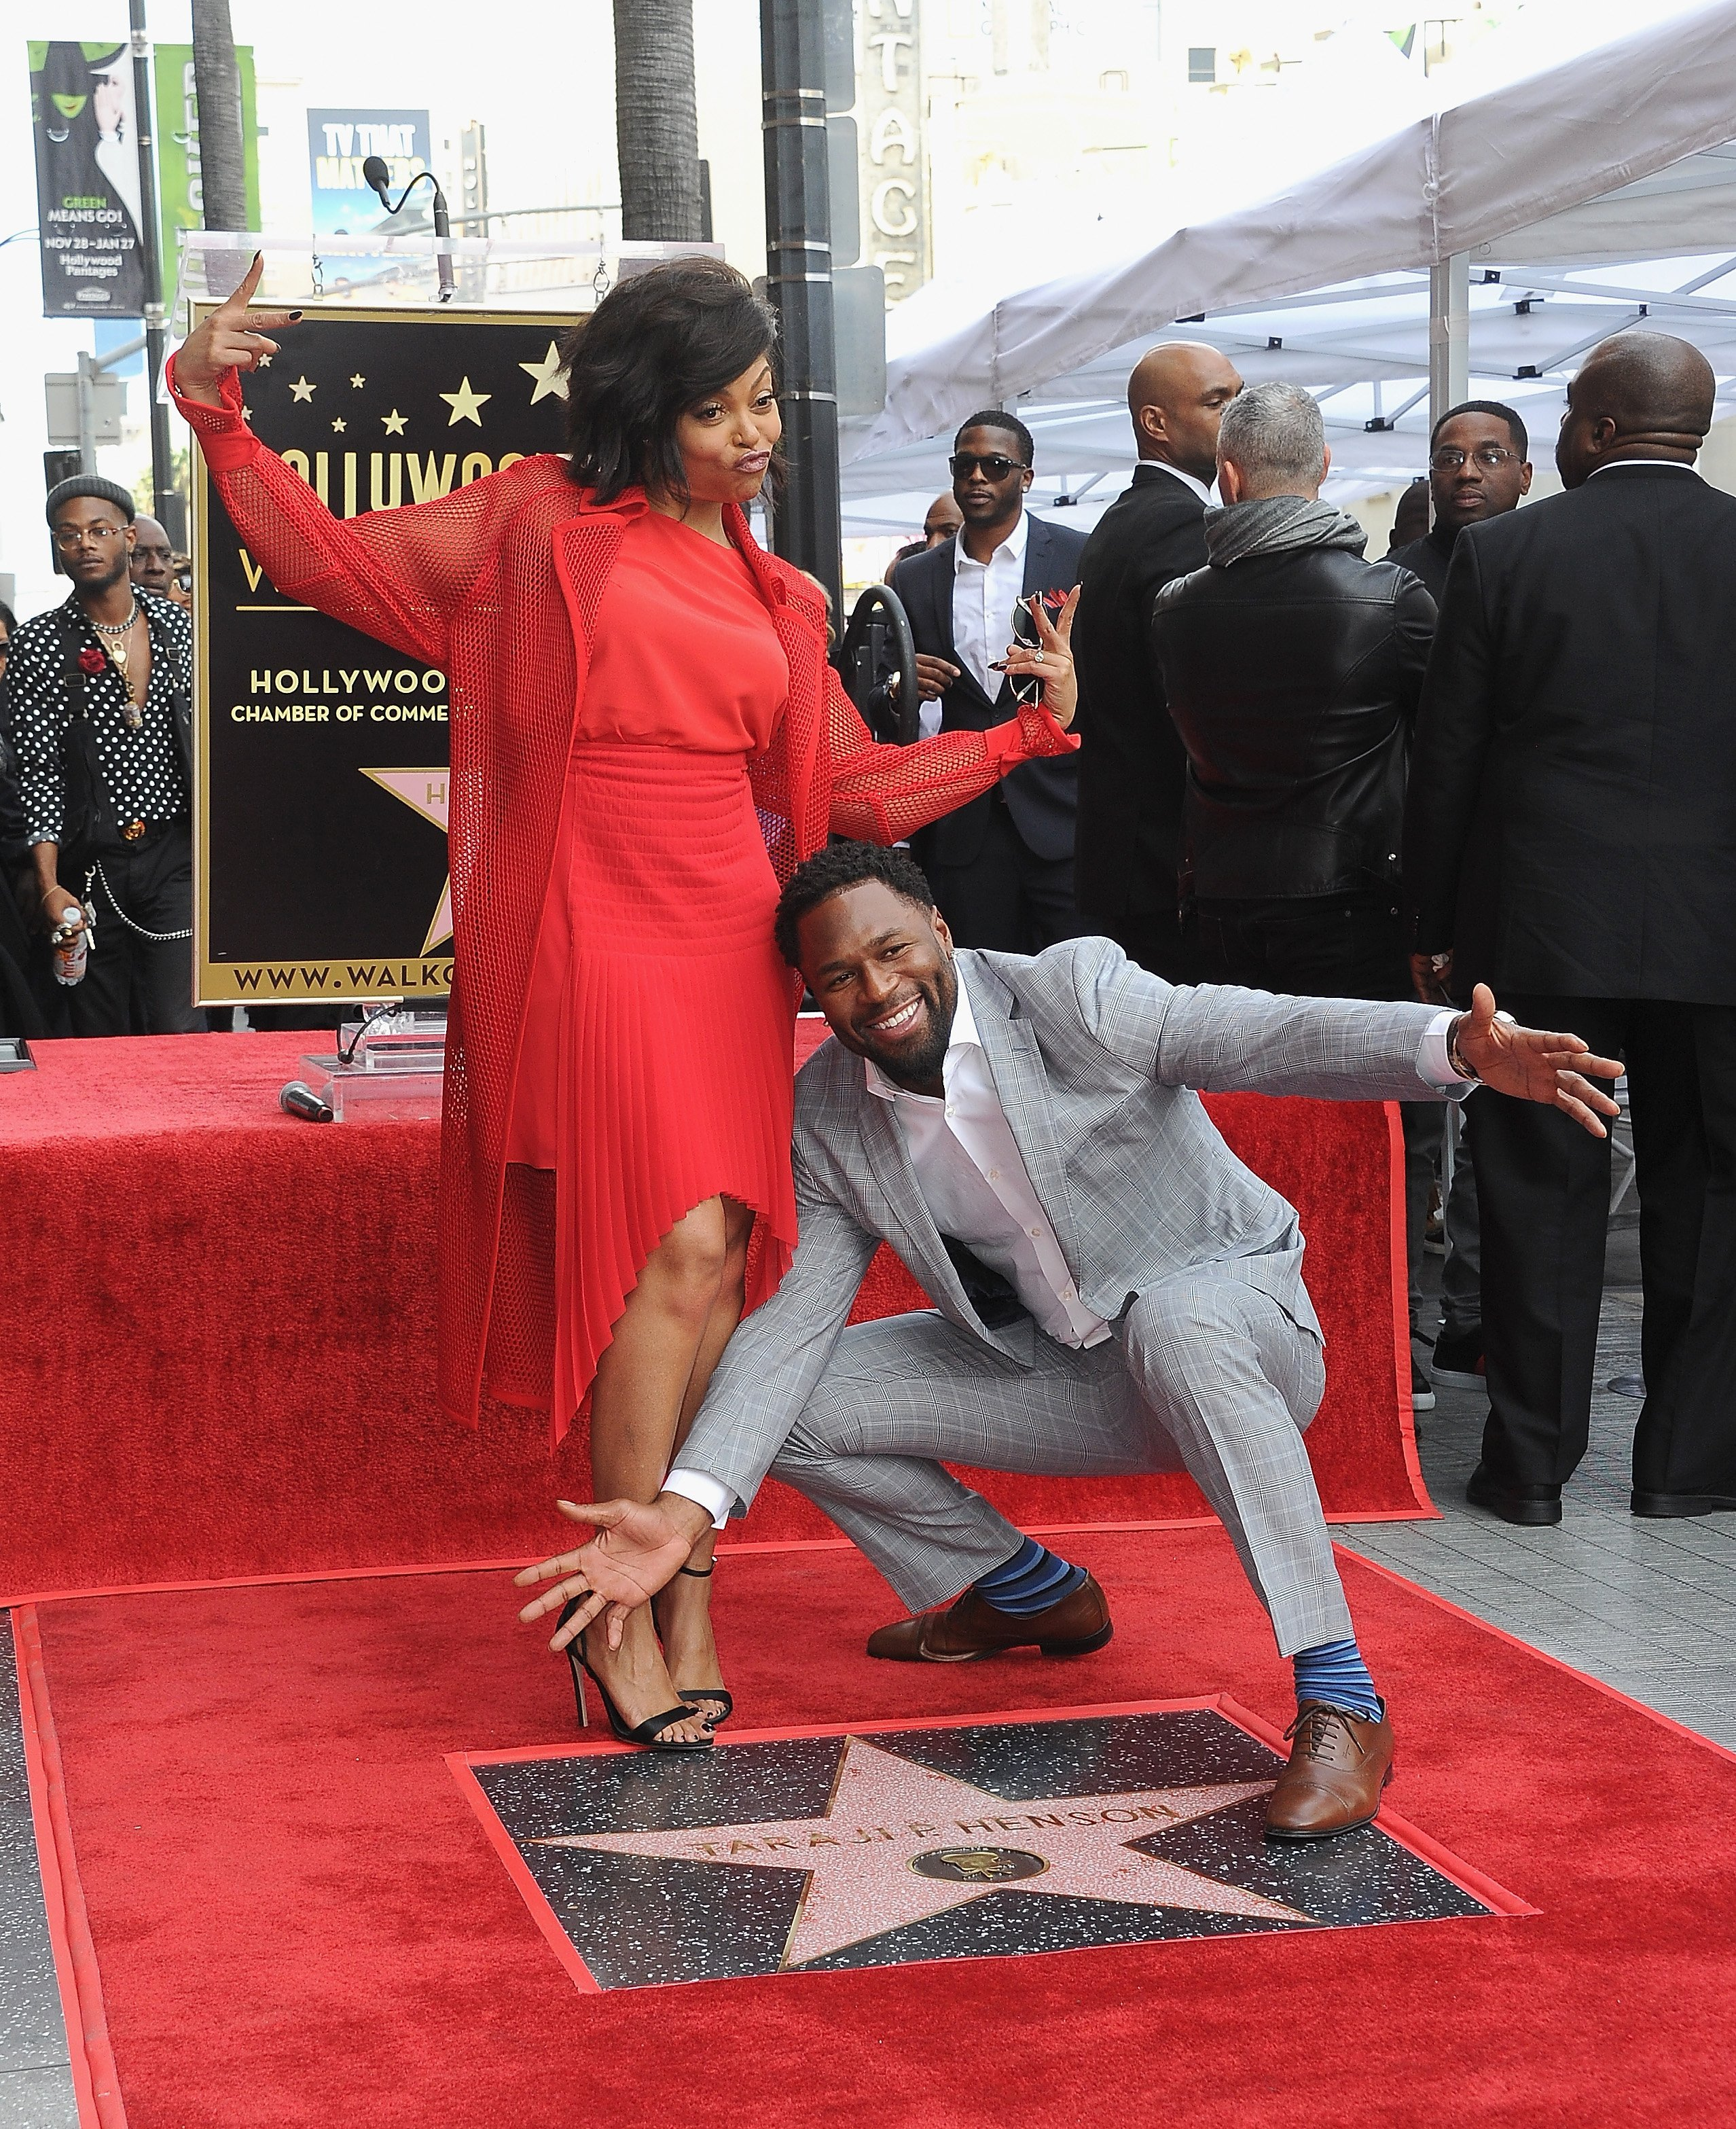 Taraji P. Henson & Kelvin Hayden as Taraji P. Henson is honored with a star on The Hollywood Walk of Fame on Jan. 28, 2019 in California | Photo: Getty Images